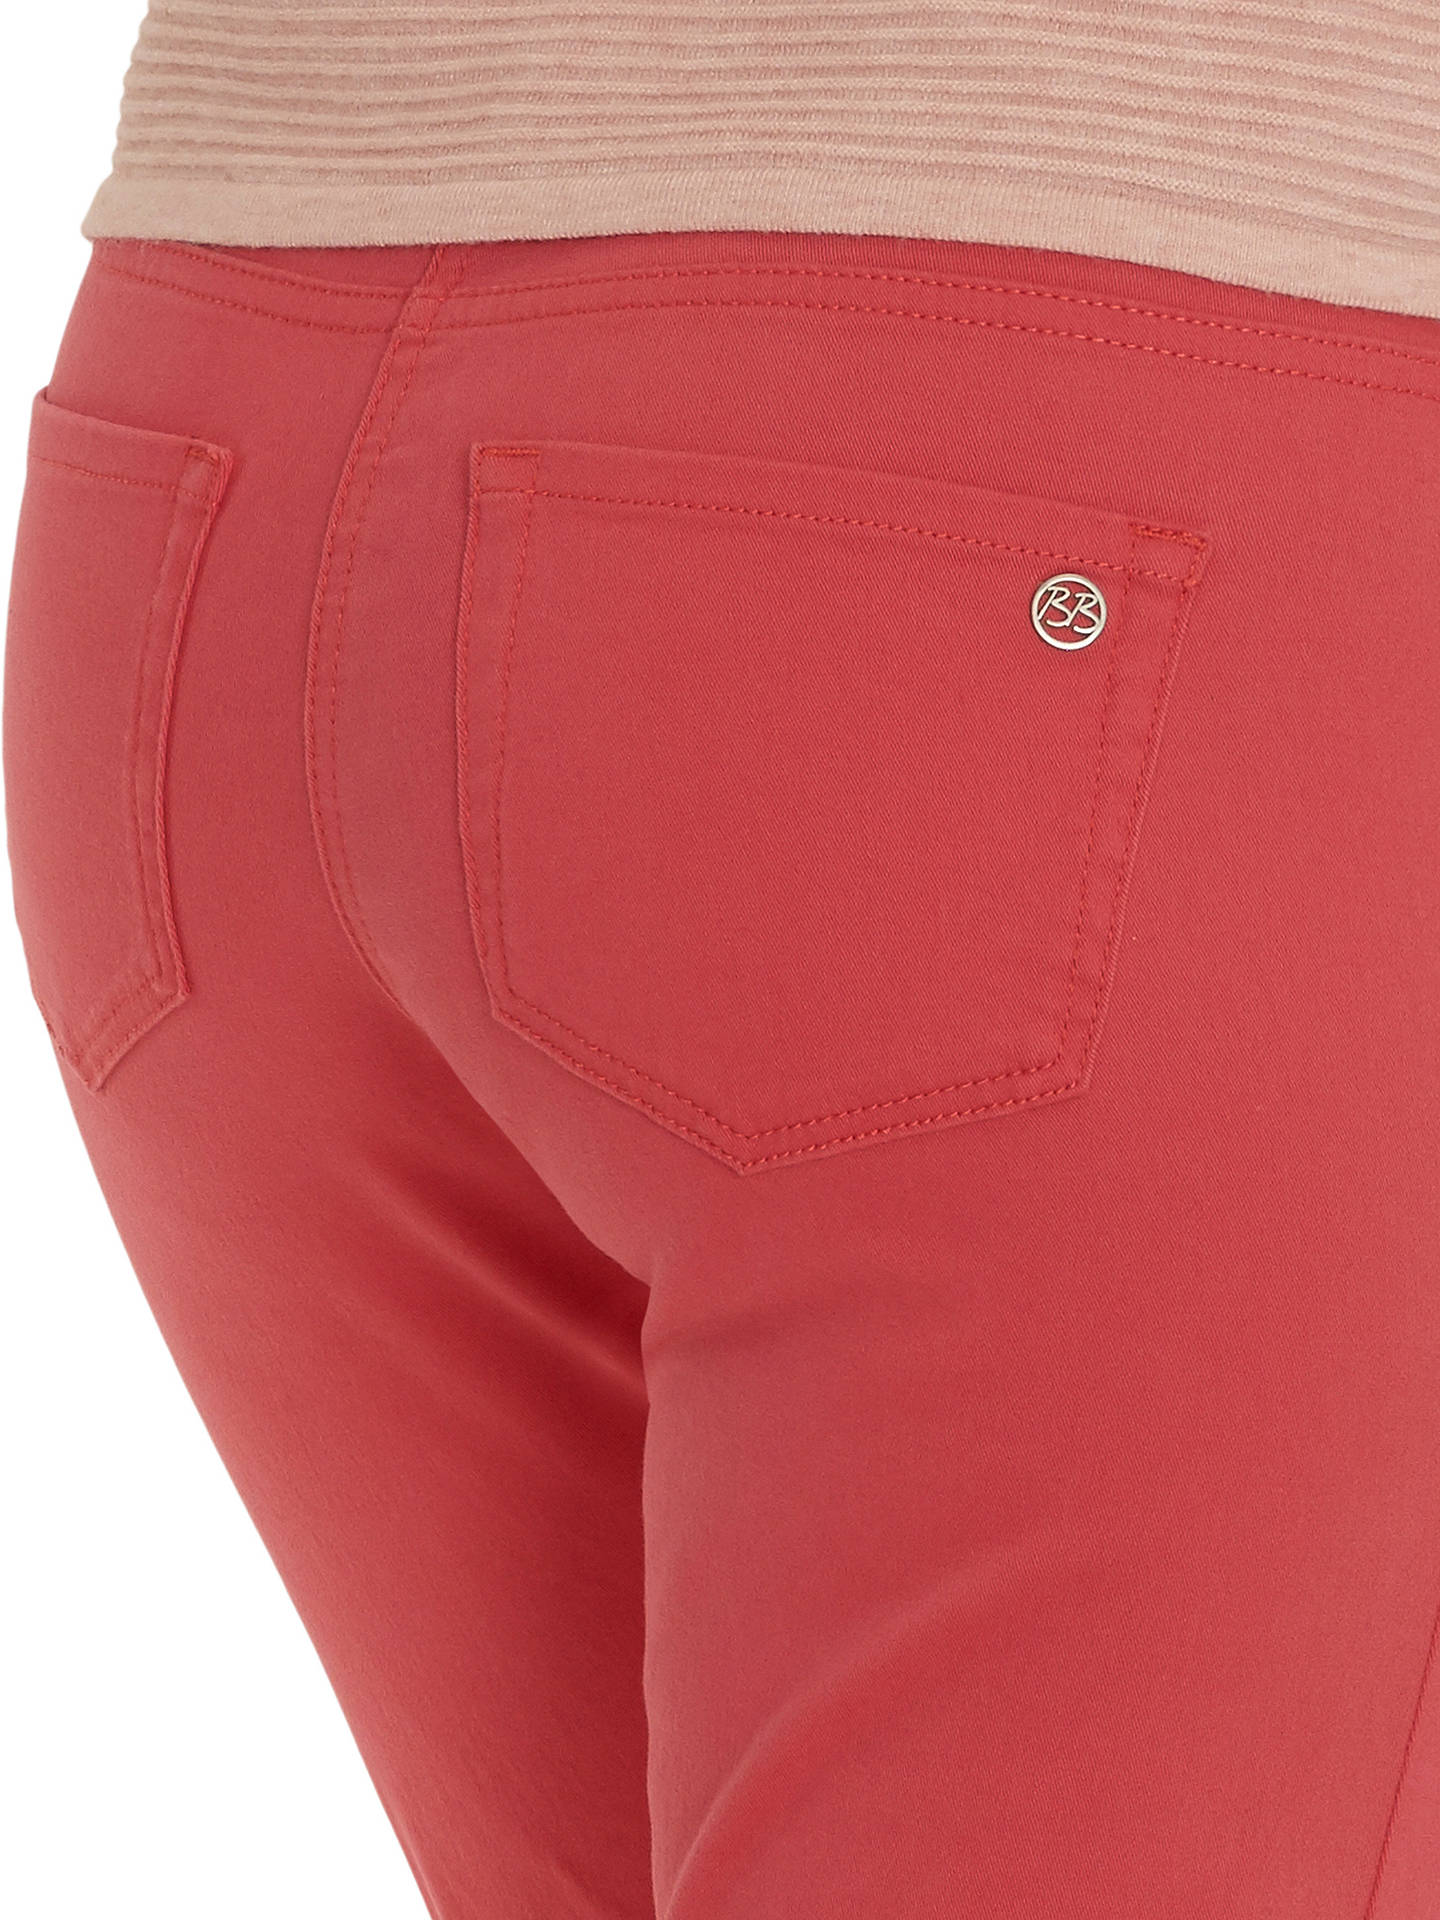 Buy Betty Barclay Slim Fit Jeans, Red Salmon, 8 Online at johnlewis.com